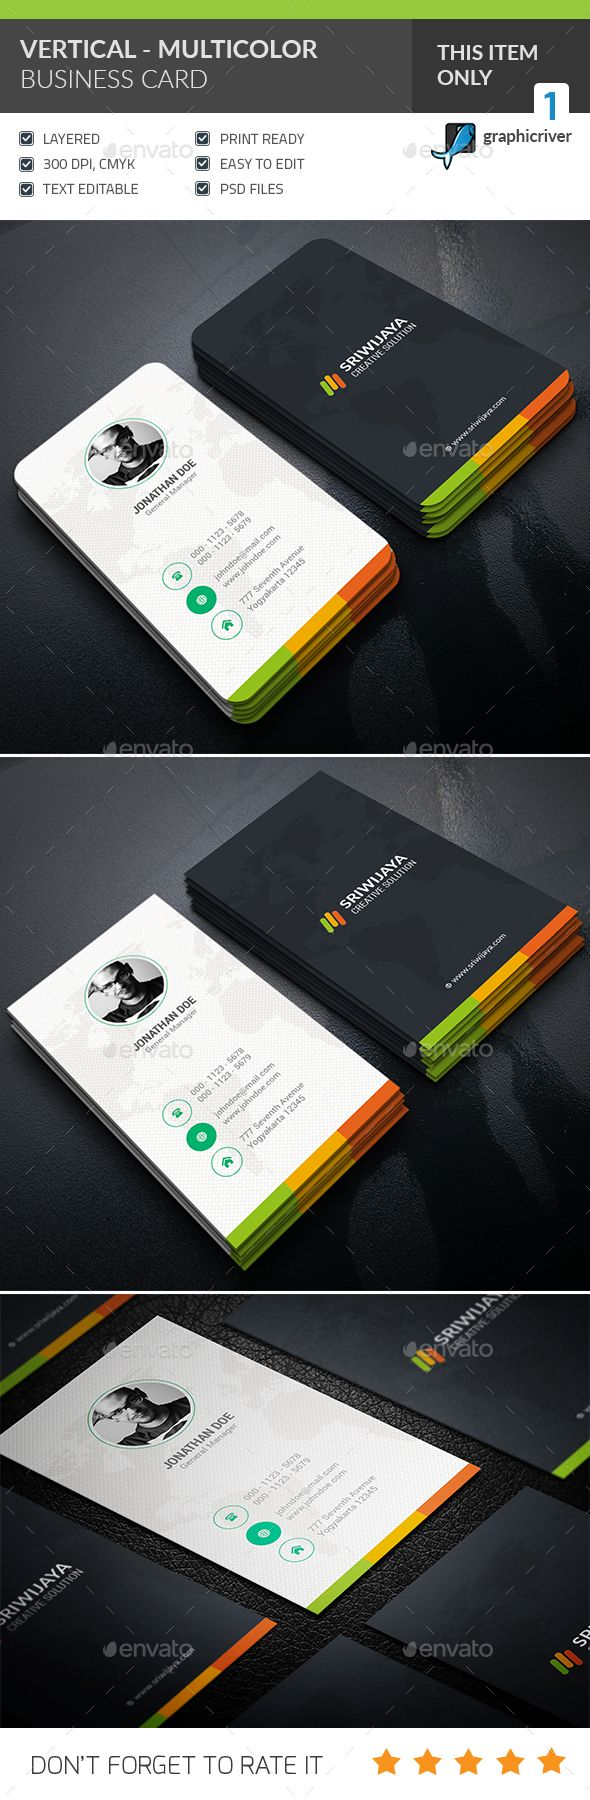 84 best business card design images on pinterest business cards vertical multicolor business card creative business cardswnload herehttp reheart Choice Image